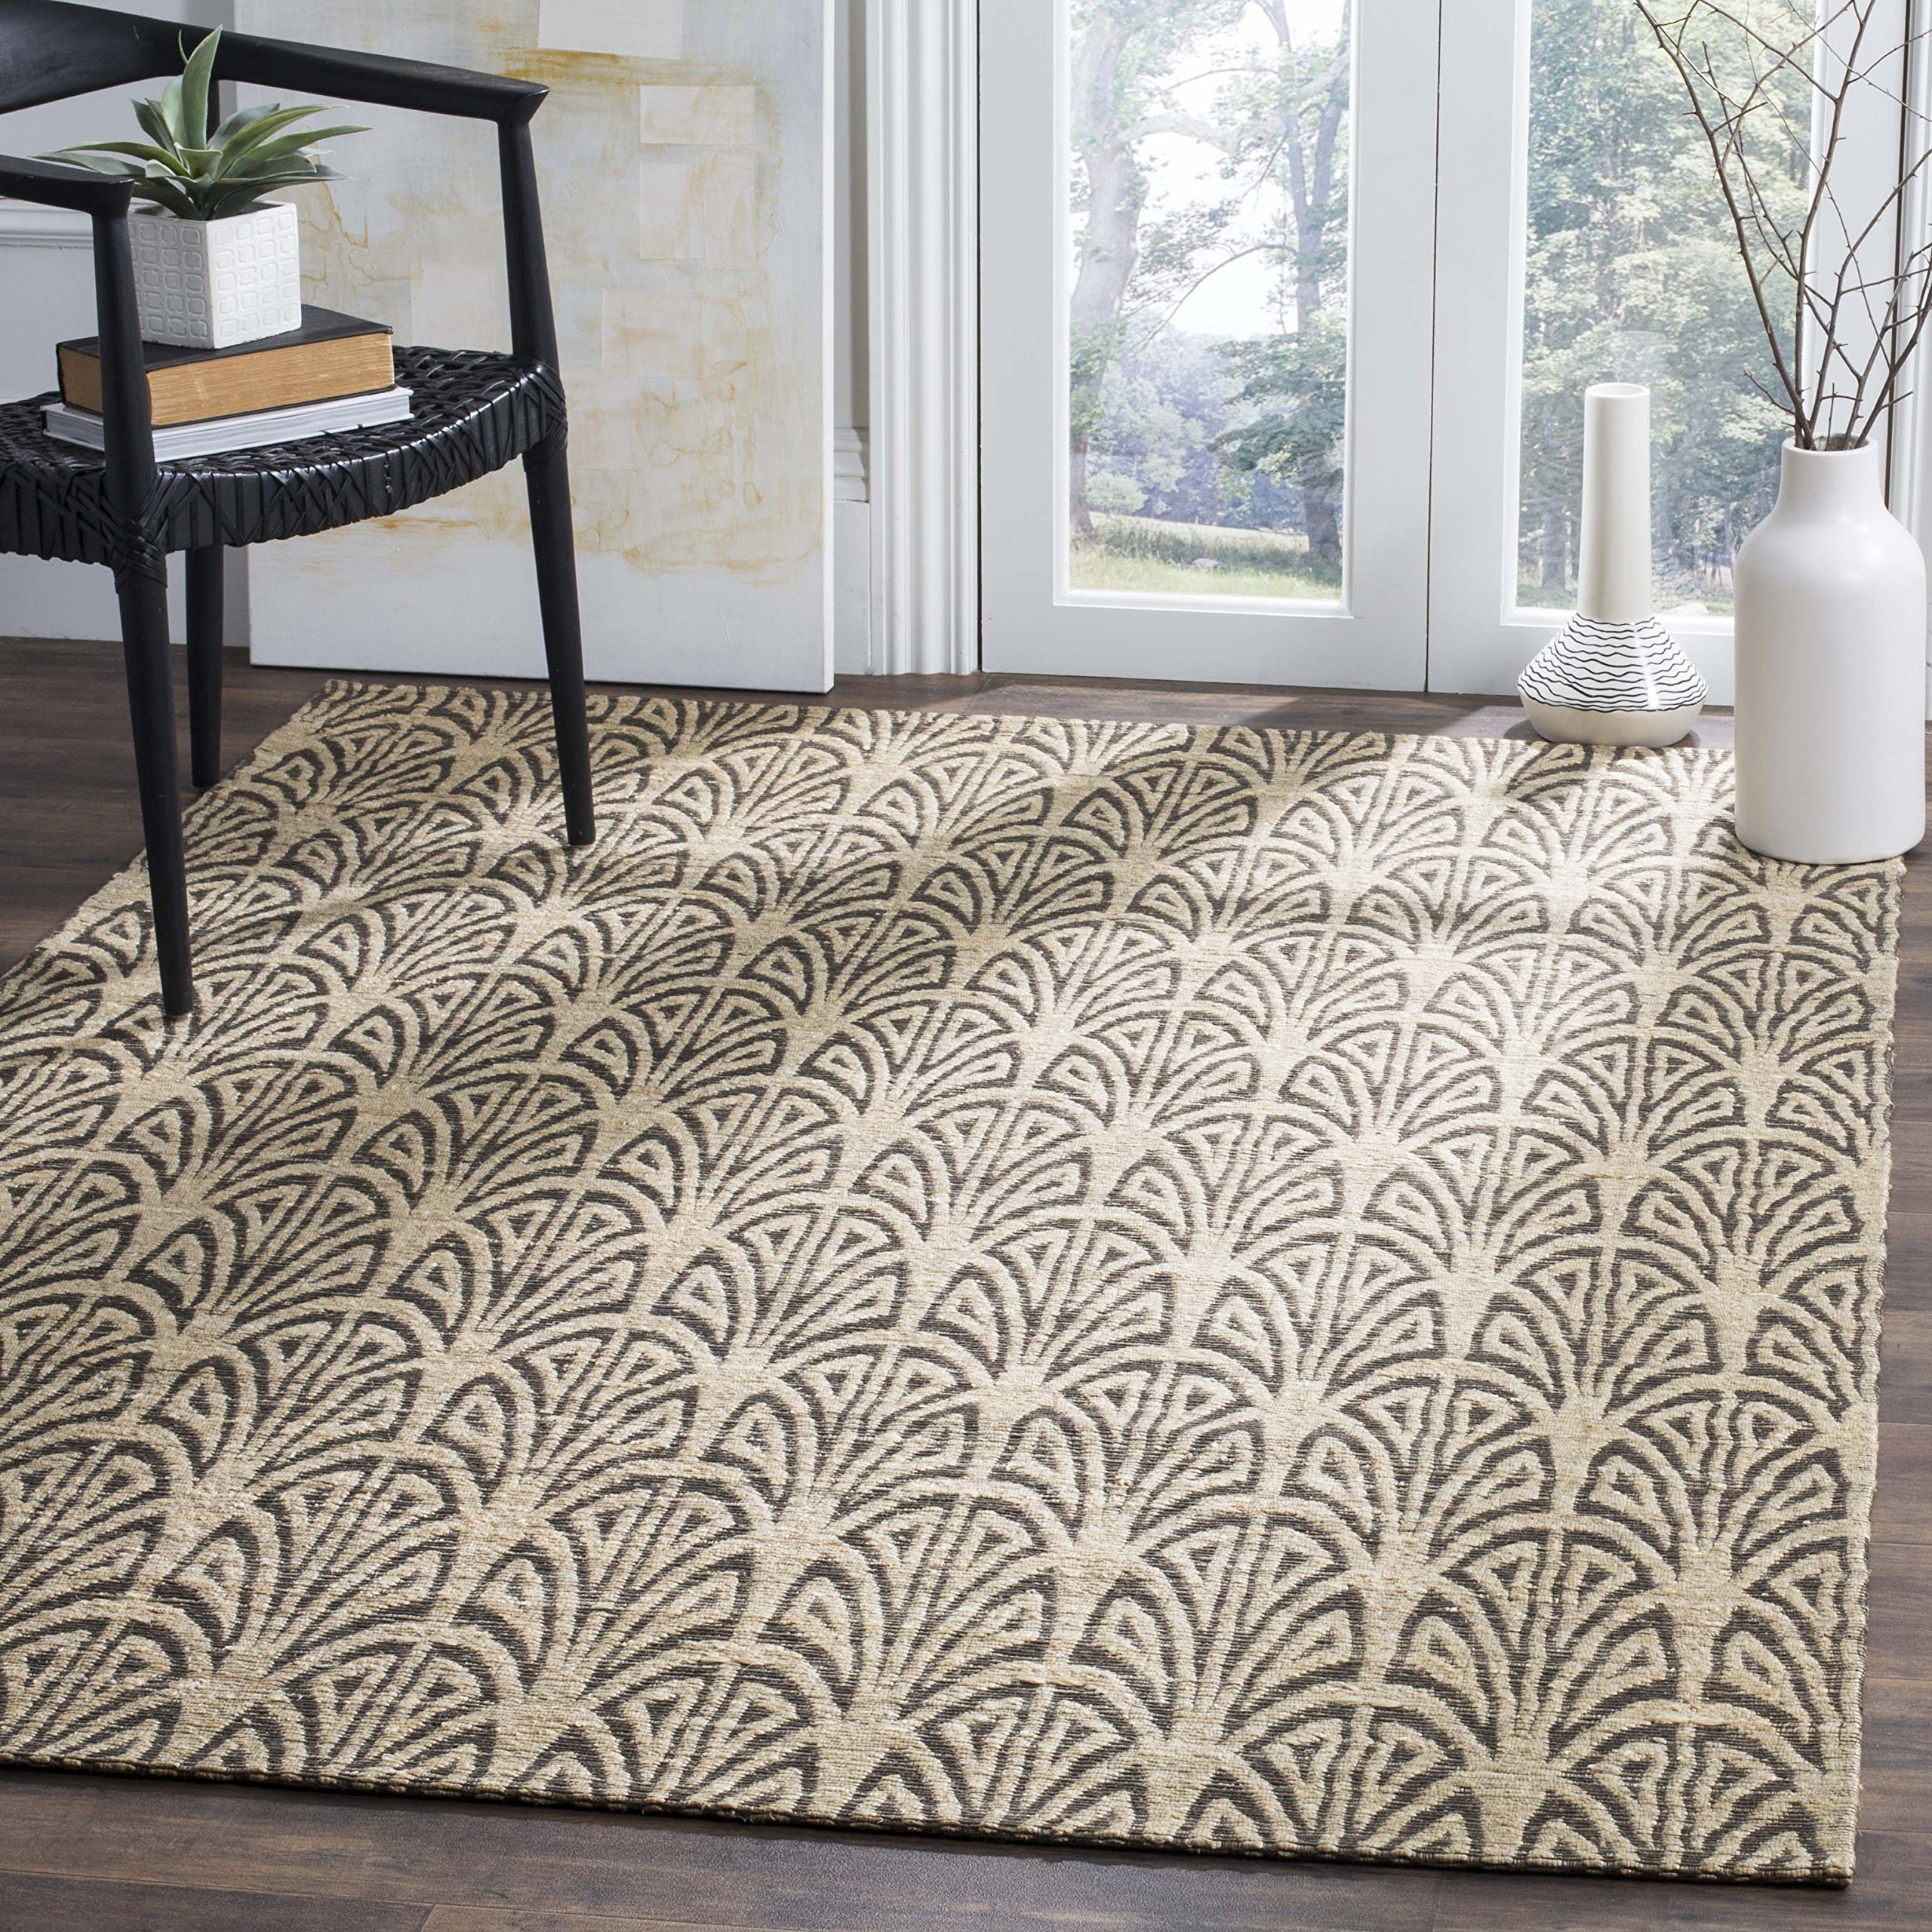 Safavieh CAP501B-5 Cape Cod Collection Flat Weave Handmade Area Rug, 5' x 8', Light Beige/Grey by Safavieh